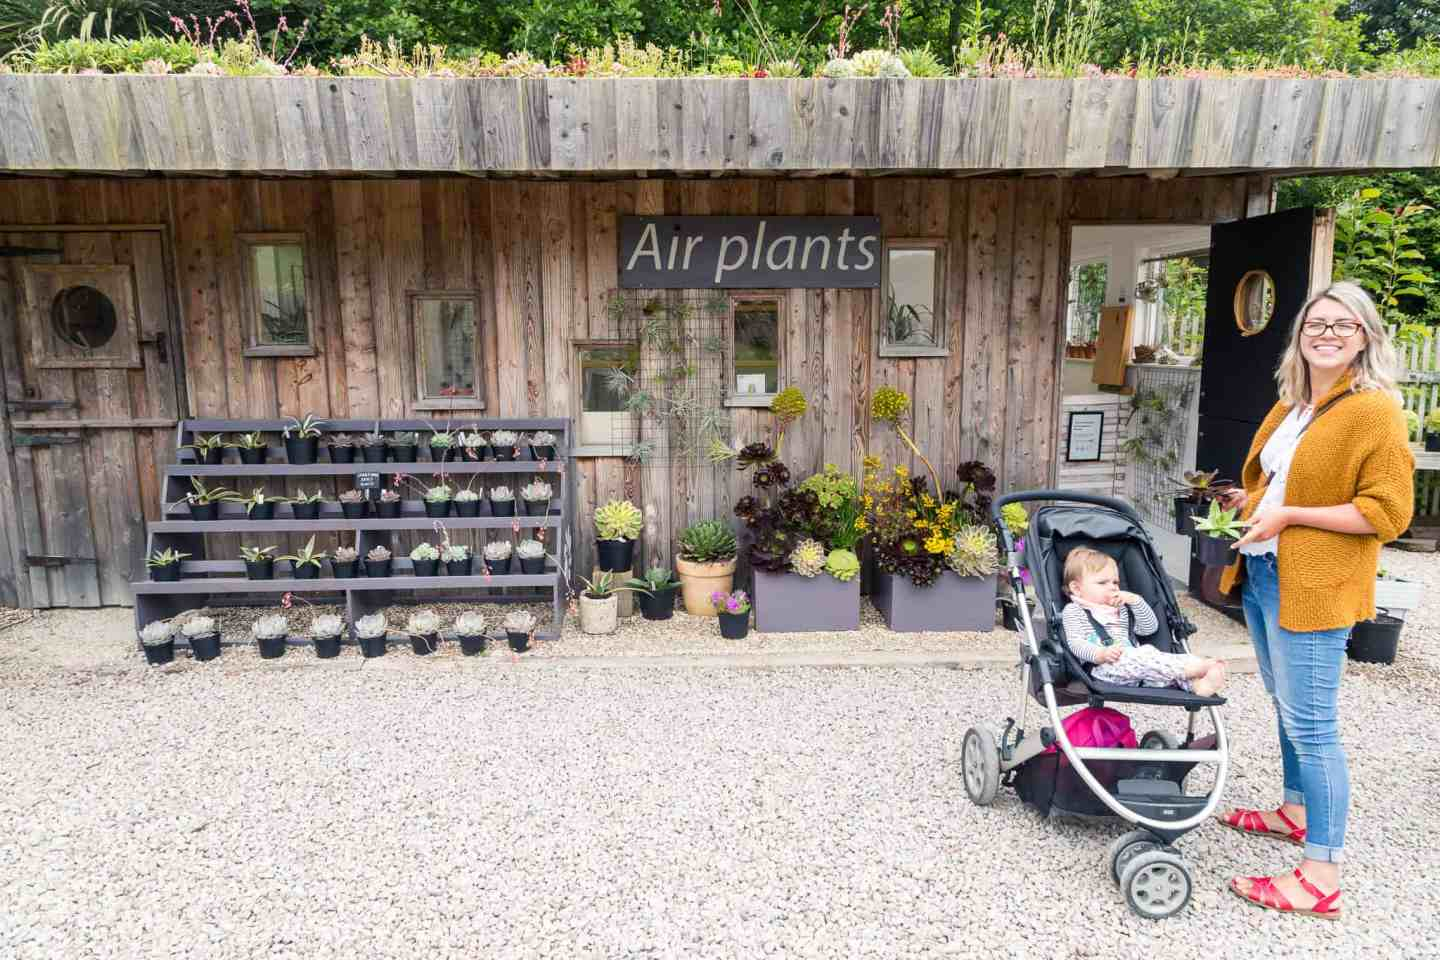 Great place for families to visit in Cornwall at Surreal Succulents